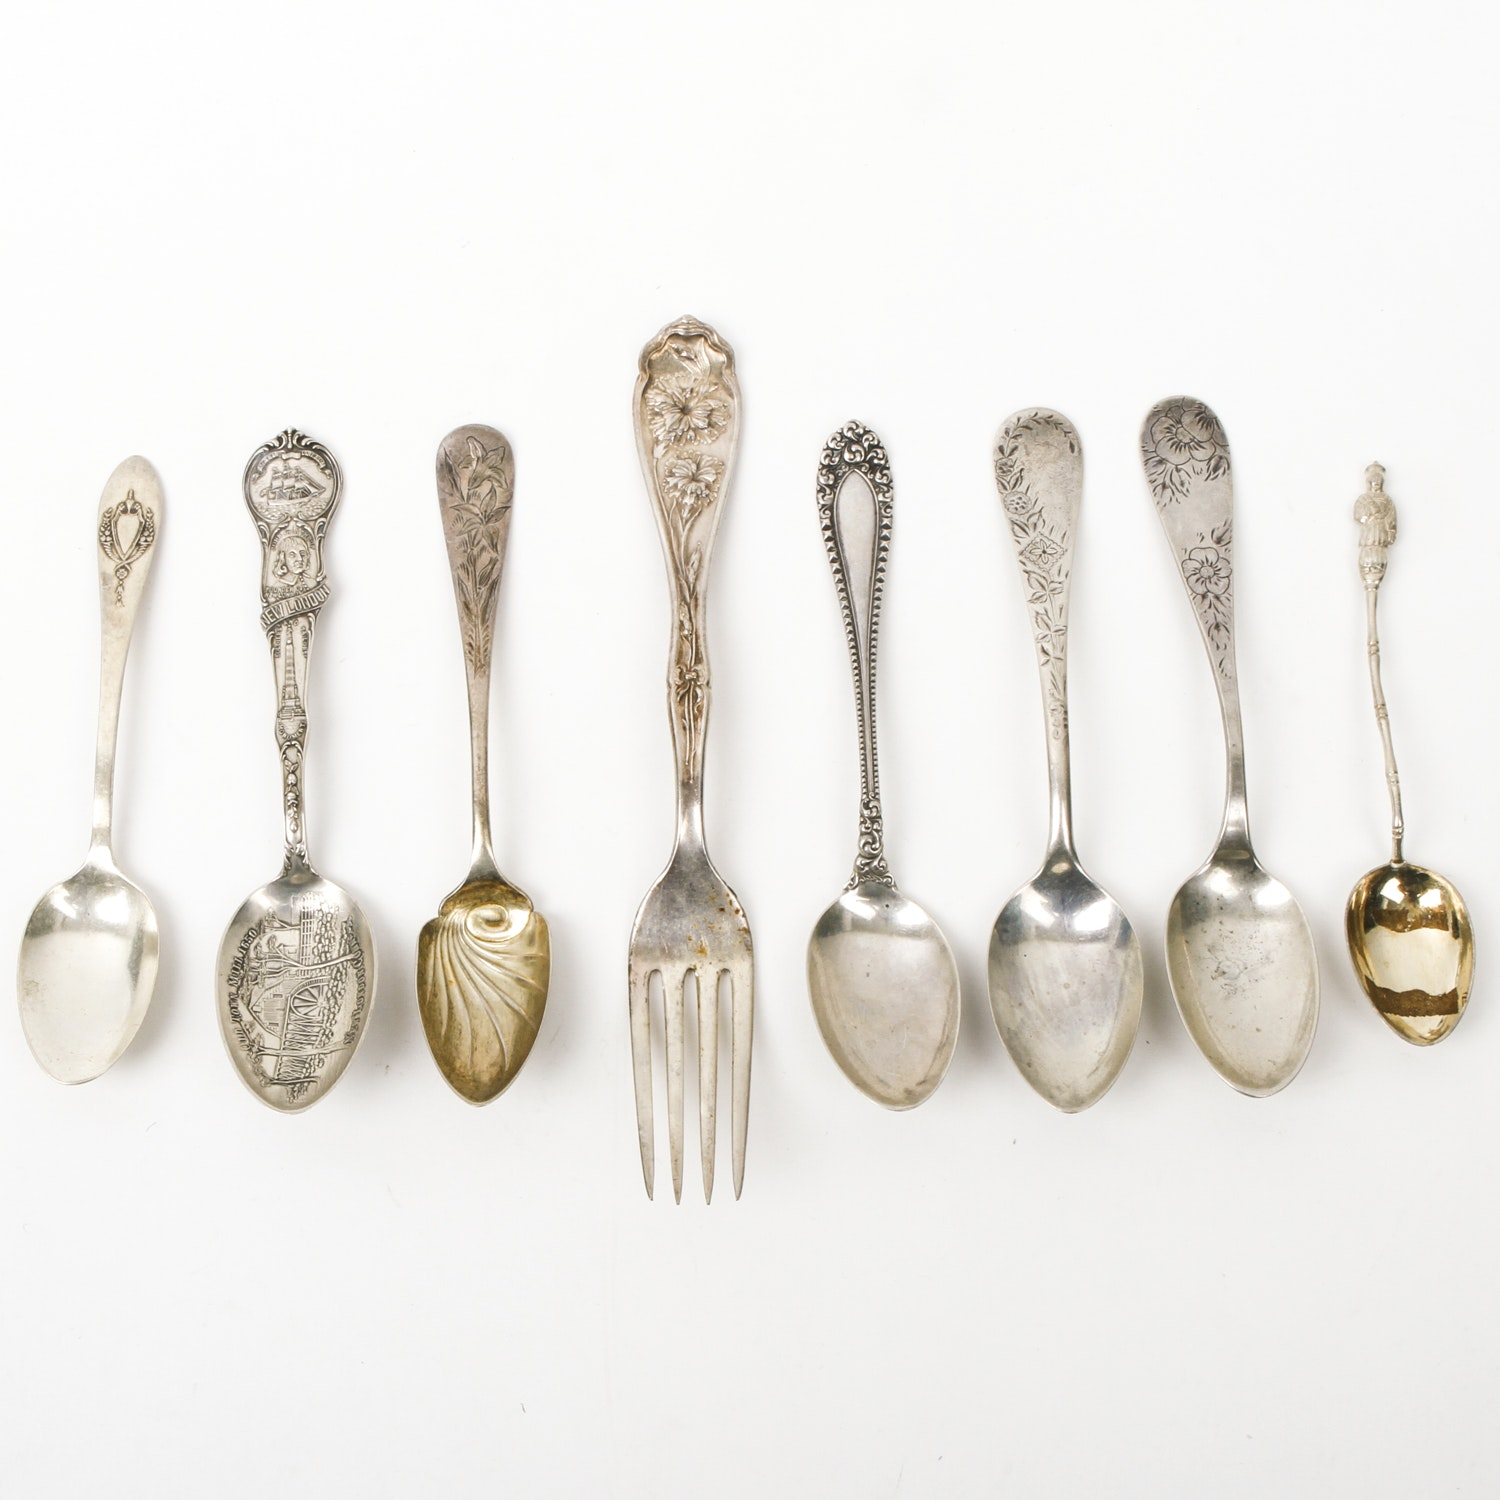 Assortment of Vintage and Antique Sterling Silver Flatware